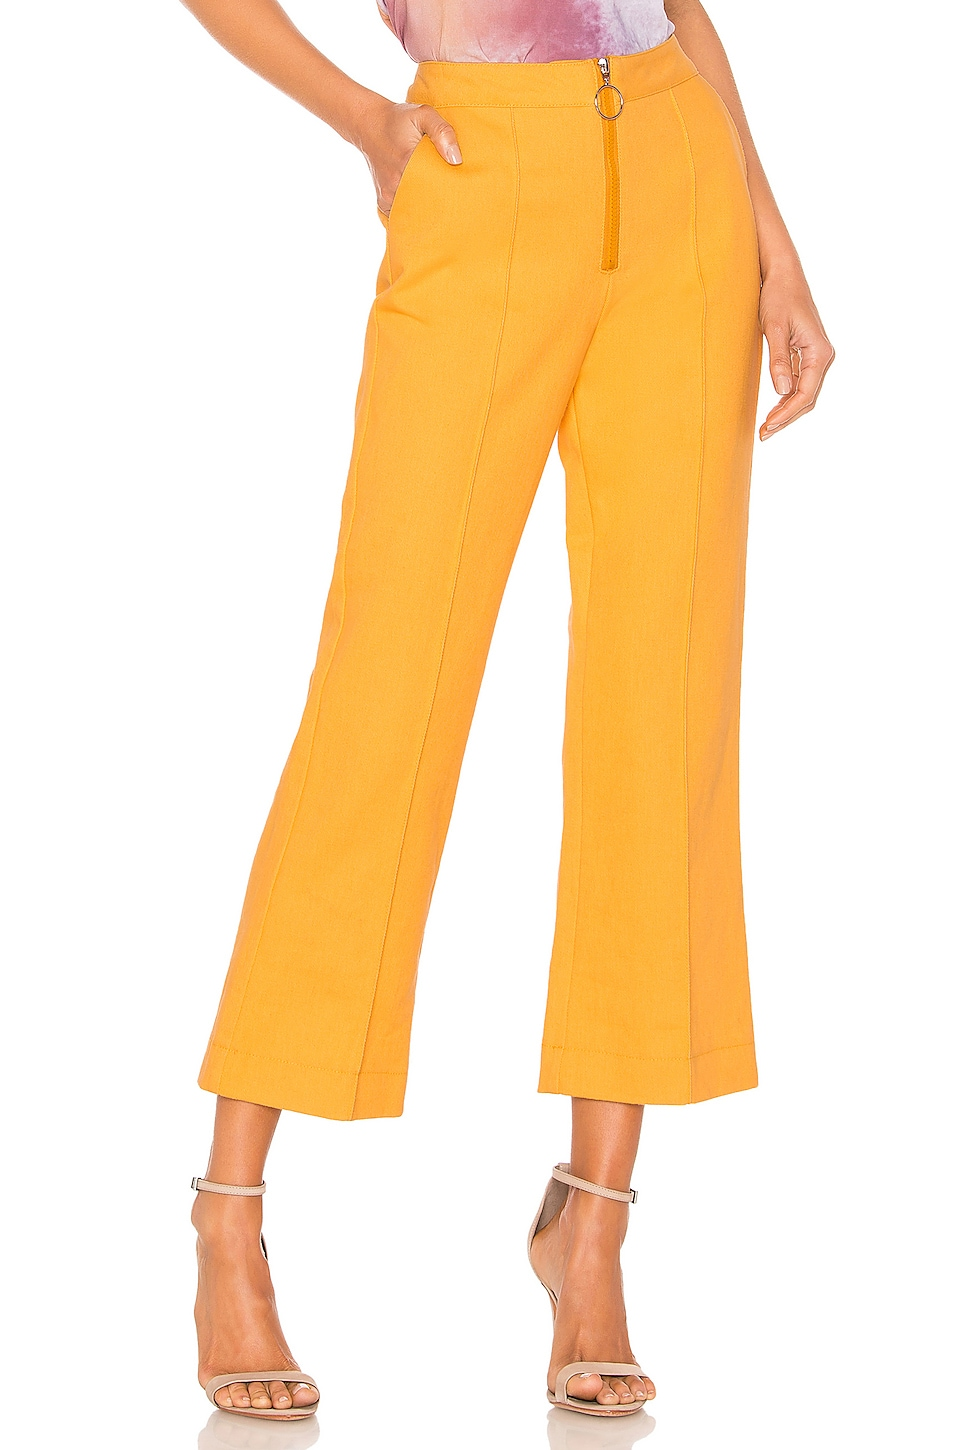 Aeryne Lydie Trousers in Mangue